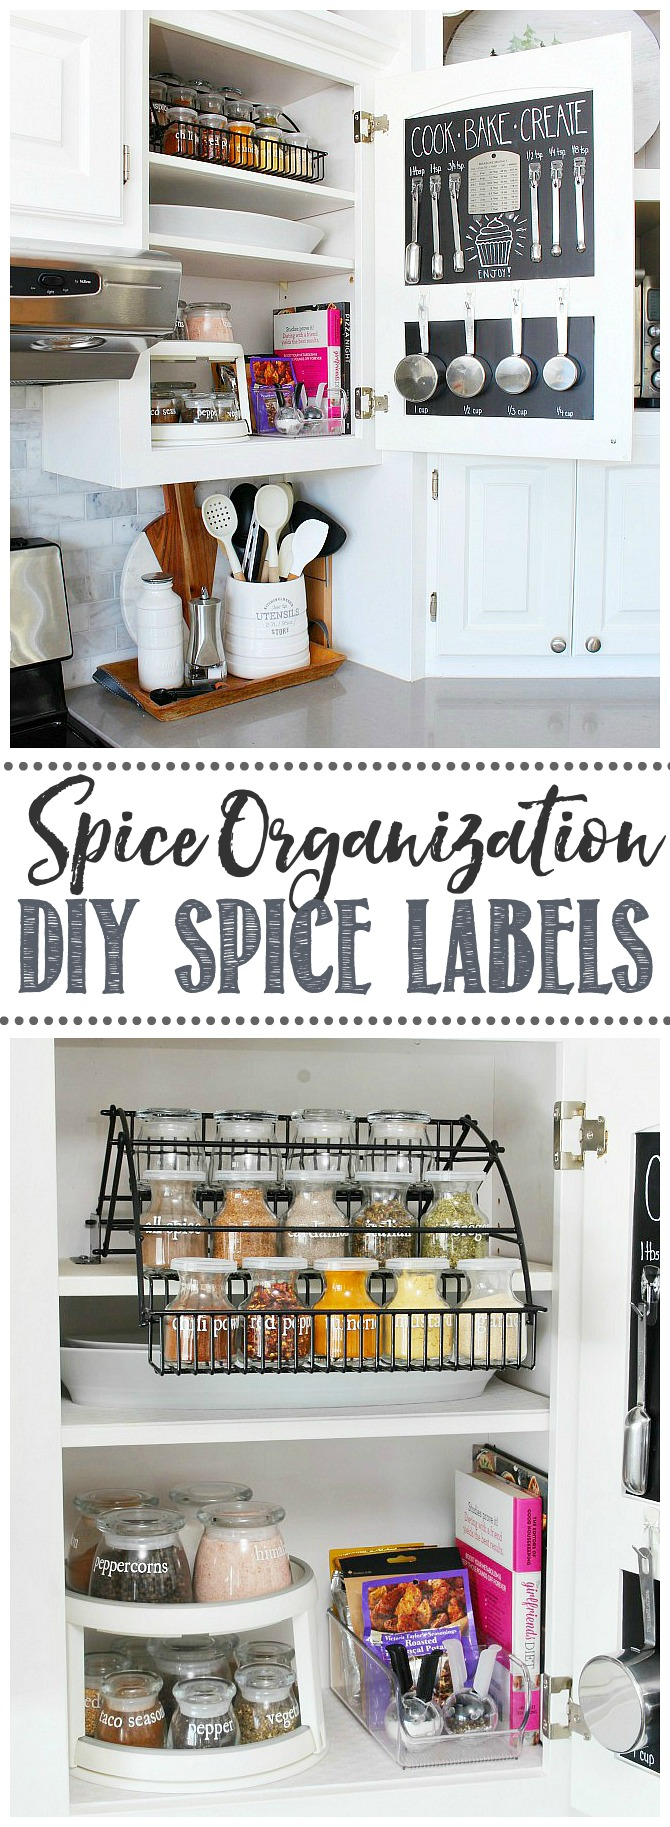 Spice organization ideas. Organized spice cupboard using a pull down shelf and lazy susan with DIY spice labels.